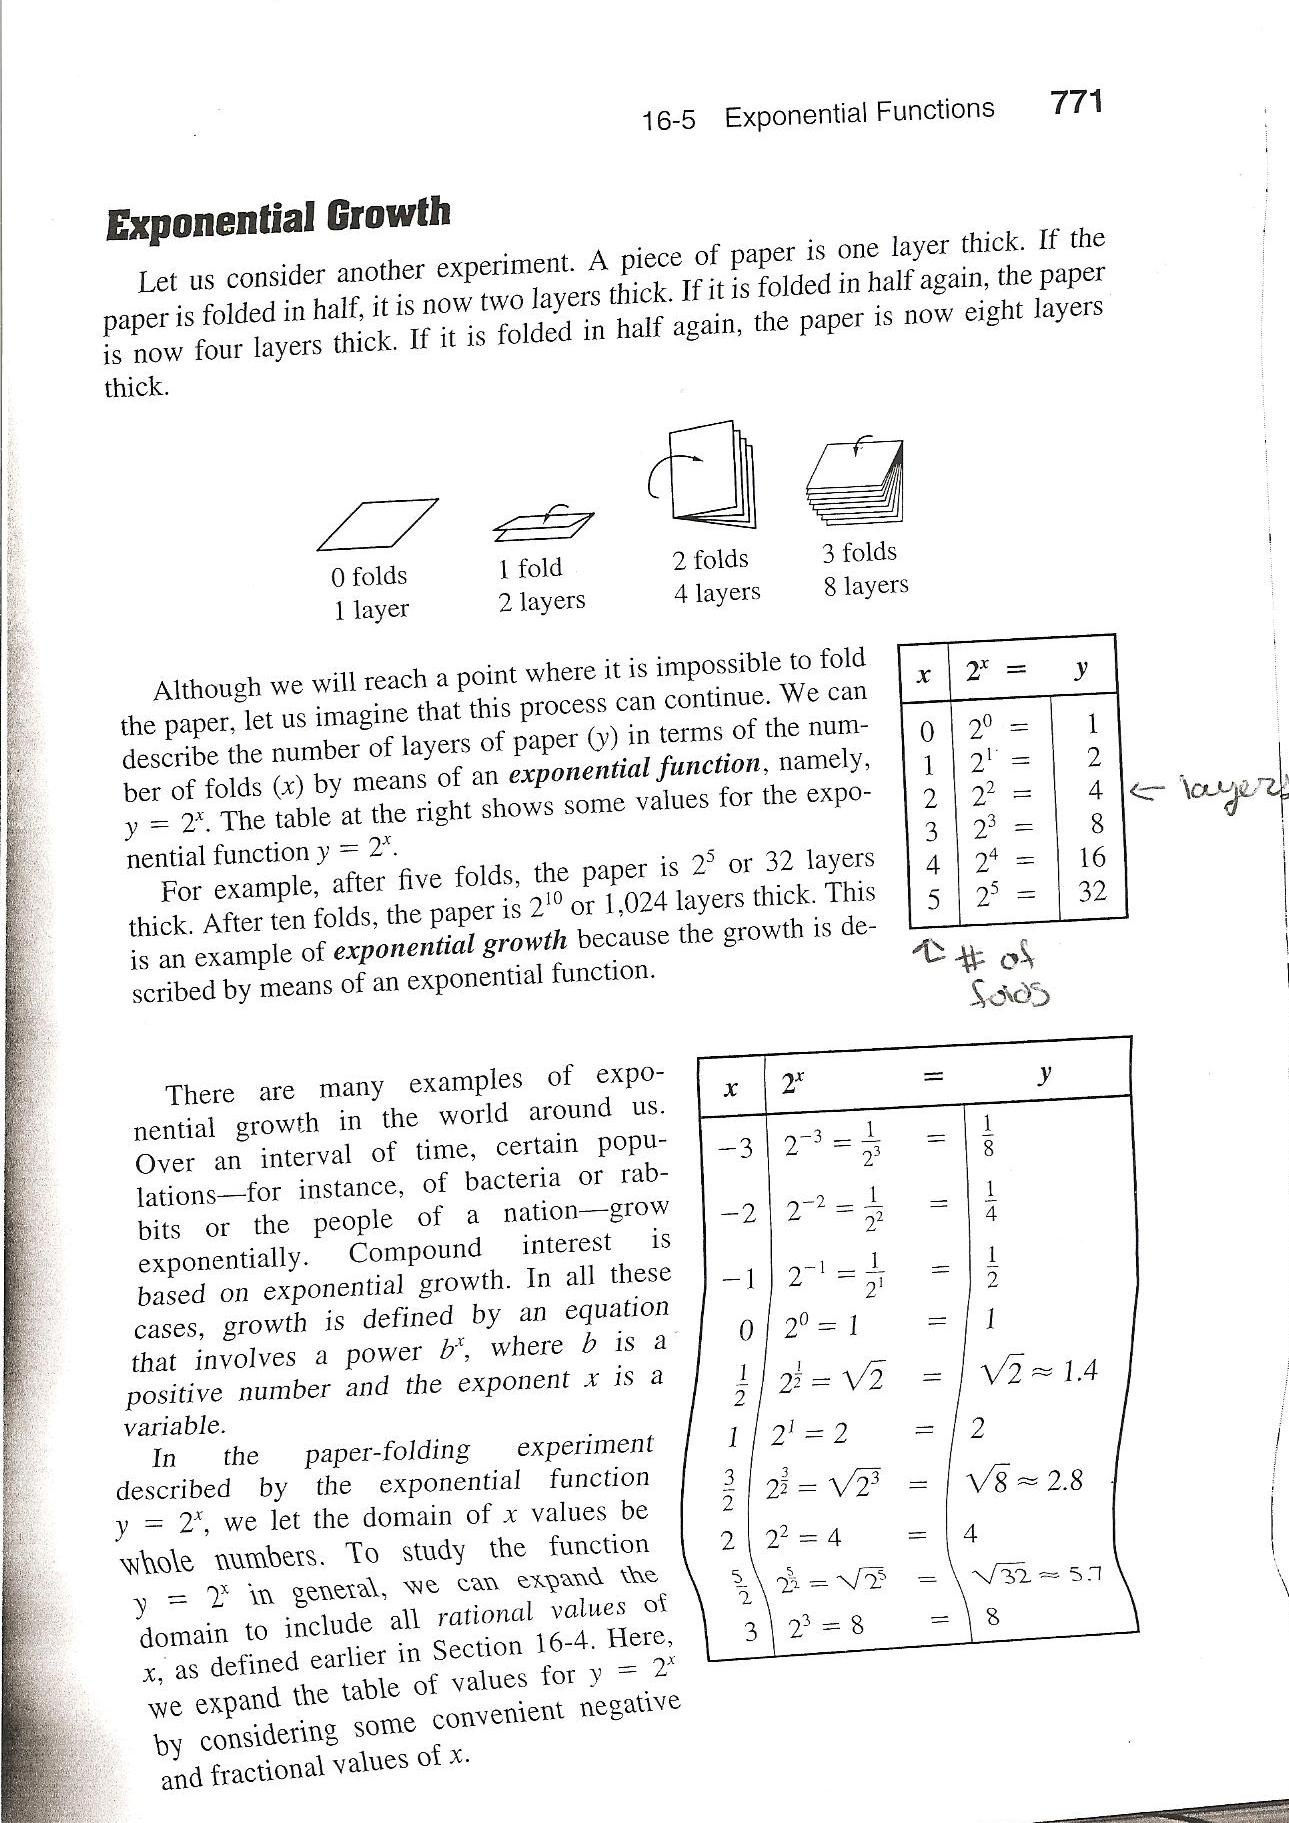 Numathmodeling 2 System Linear Equations And Exponential